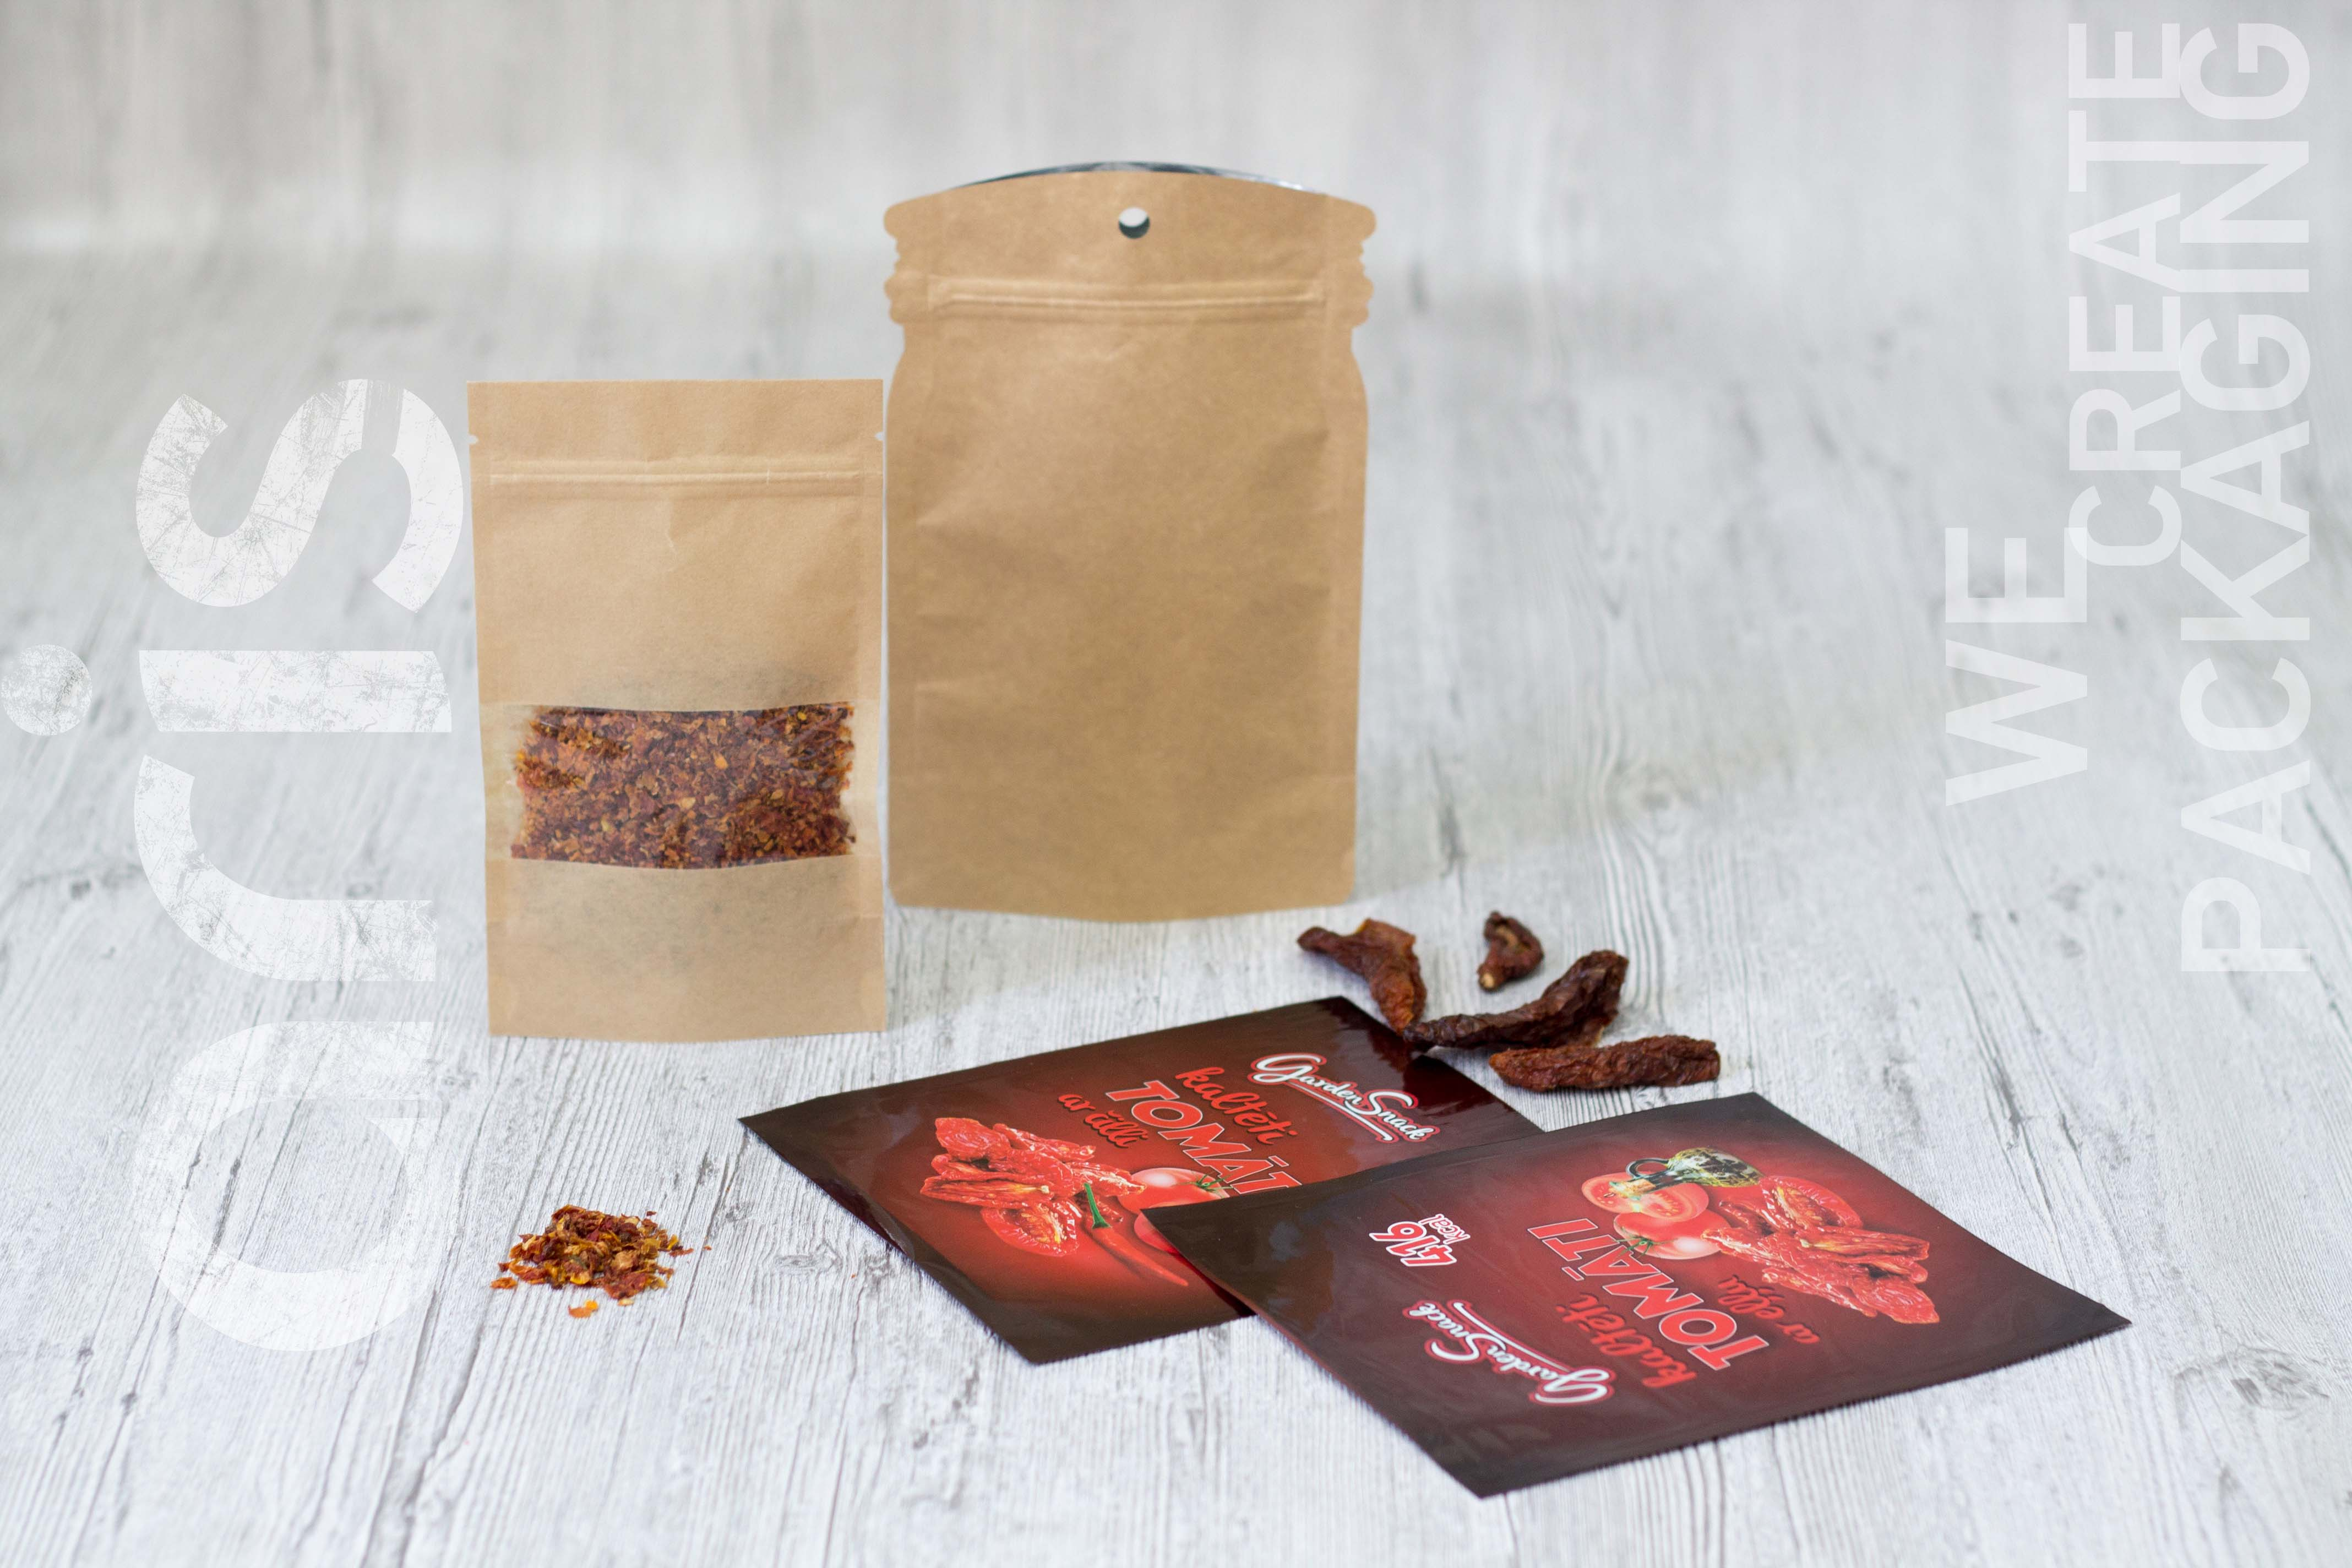 doy-pack package for spices